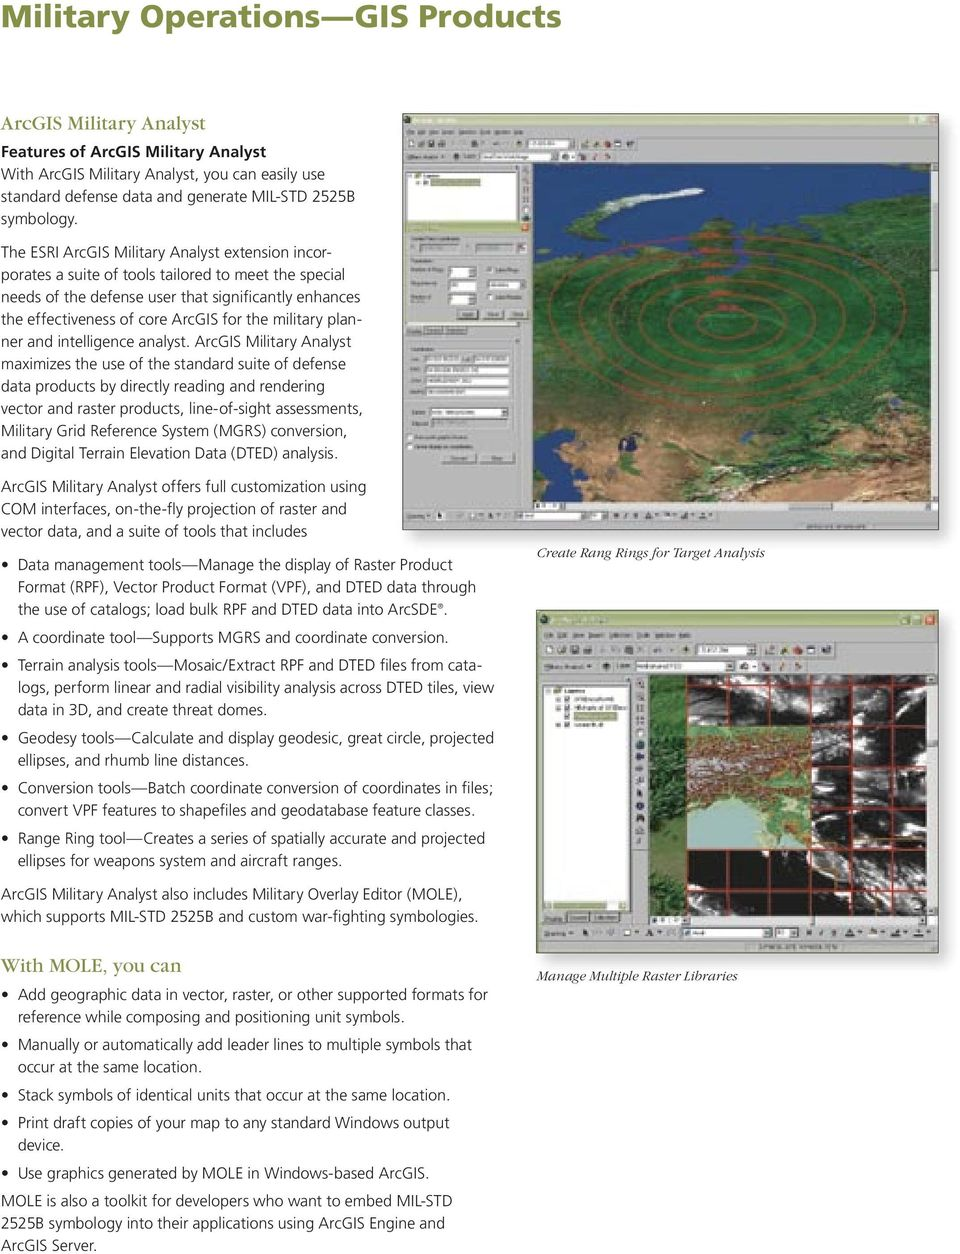 The ESRI ArcGIS Military Analyst extension incorporates a suite of tools tailored to meet the special needs of the defense user that significantly enhances the effectiveness of core ArcGIS for the